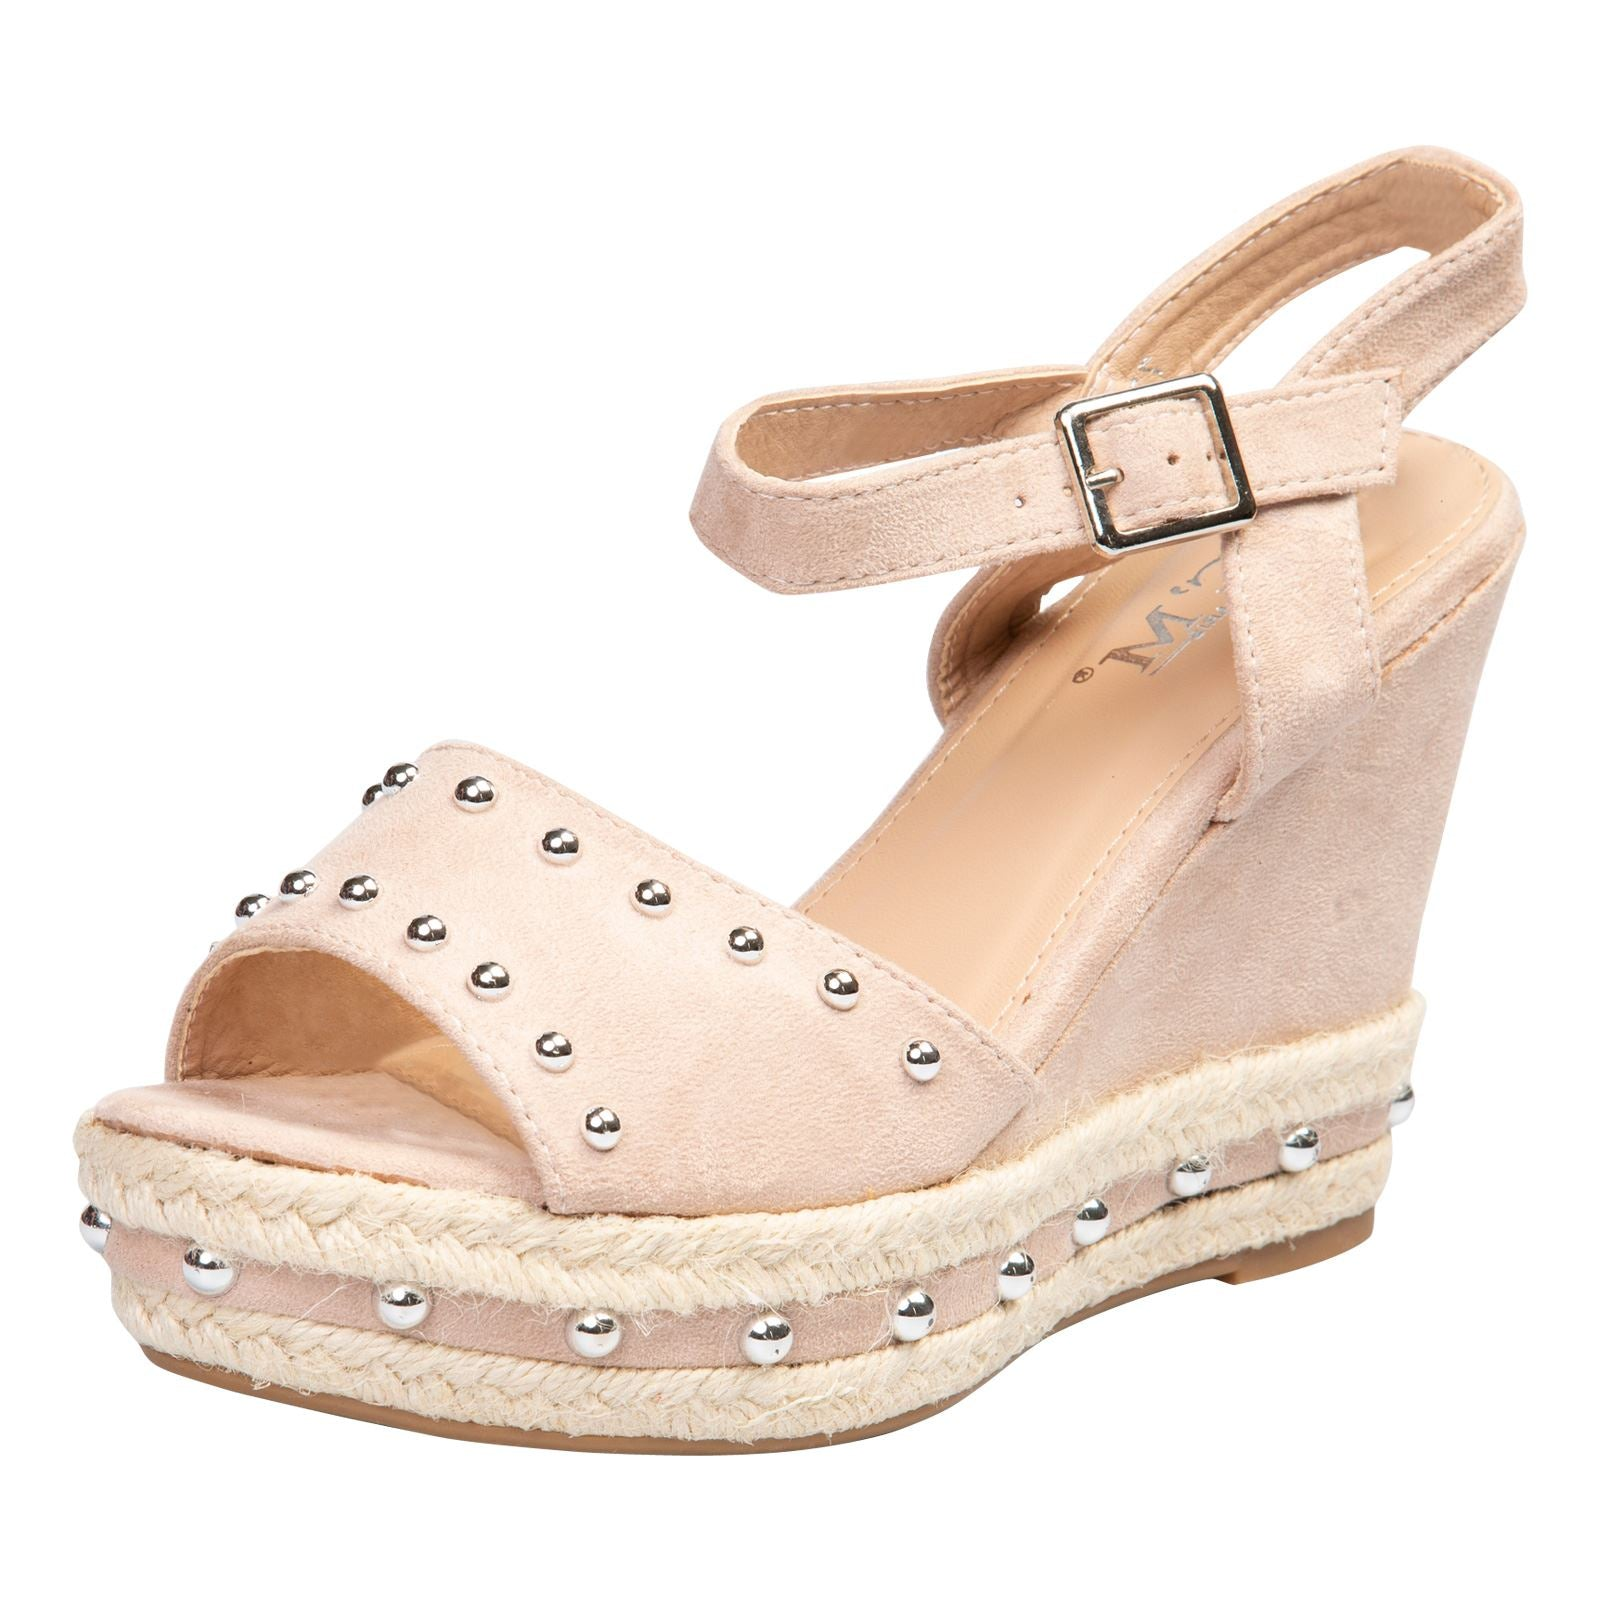 Bridie Studded Platform Sandals in Pink Faux Suede - Feet First Fashion